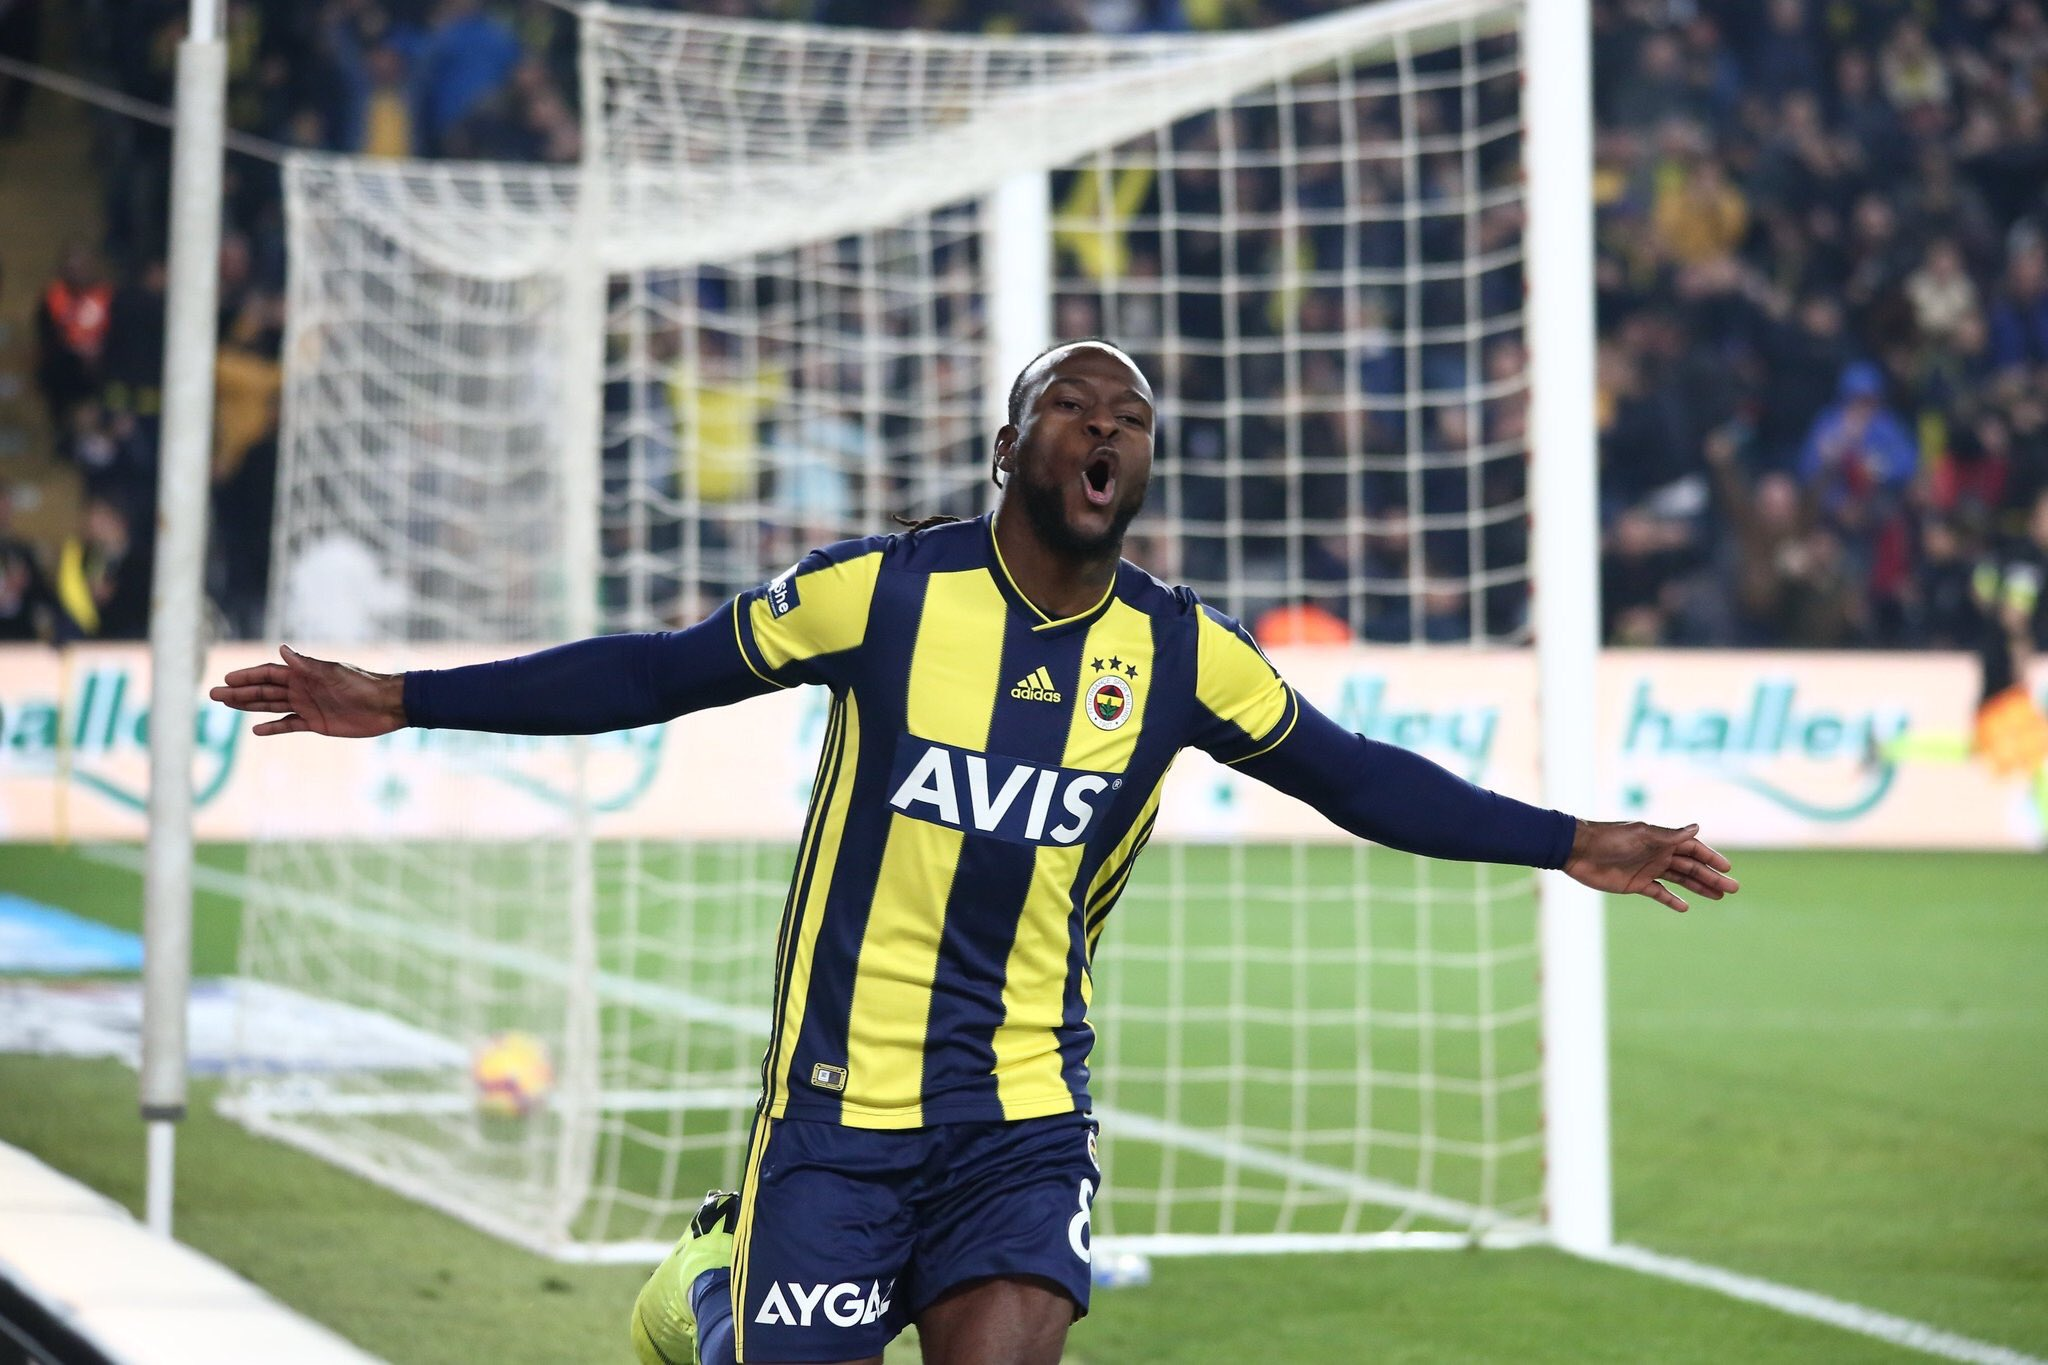 Moses scores first goal for Fenerbahce